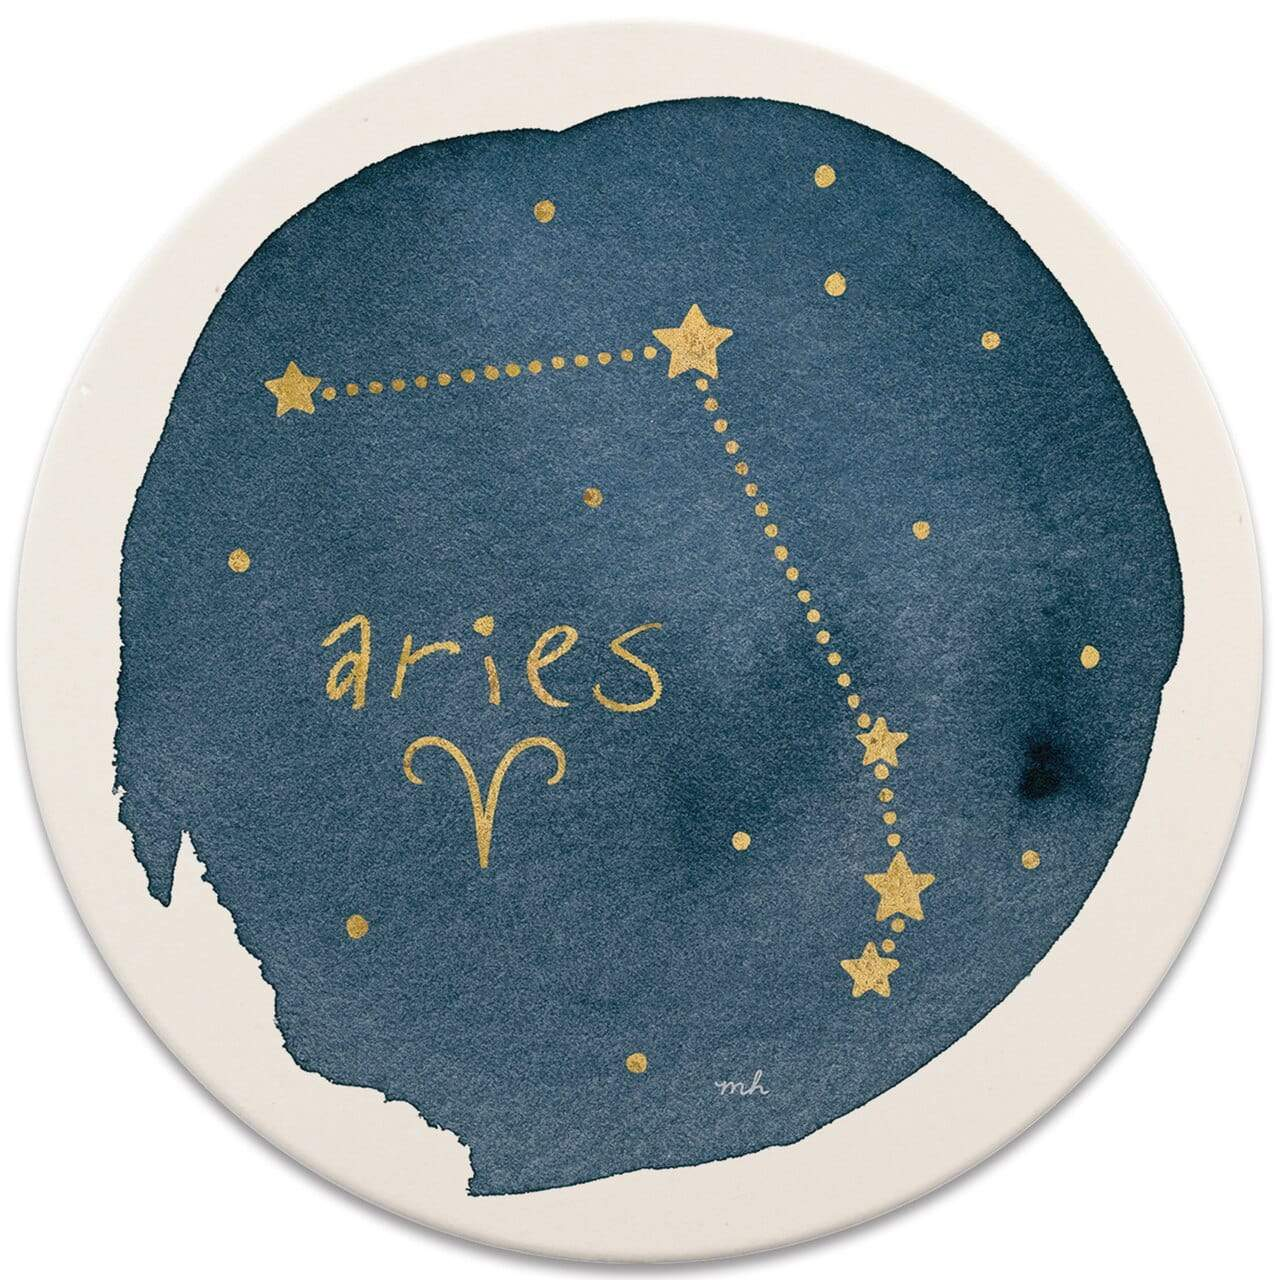 Karma Kiss Aries Sign Coaster - Set of 4